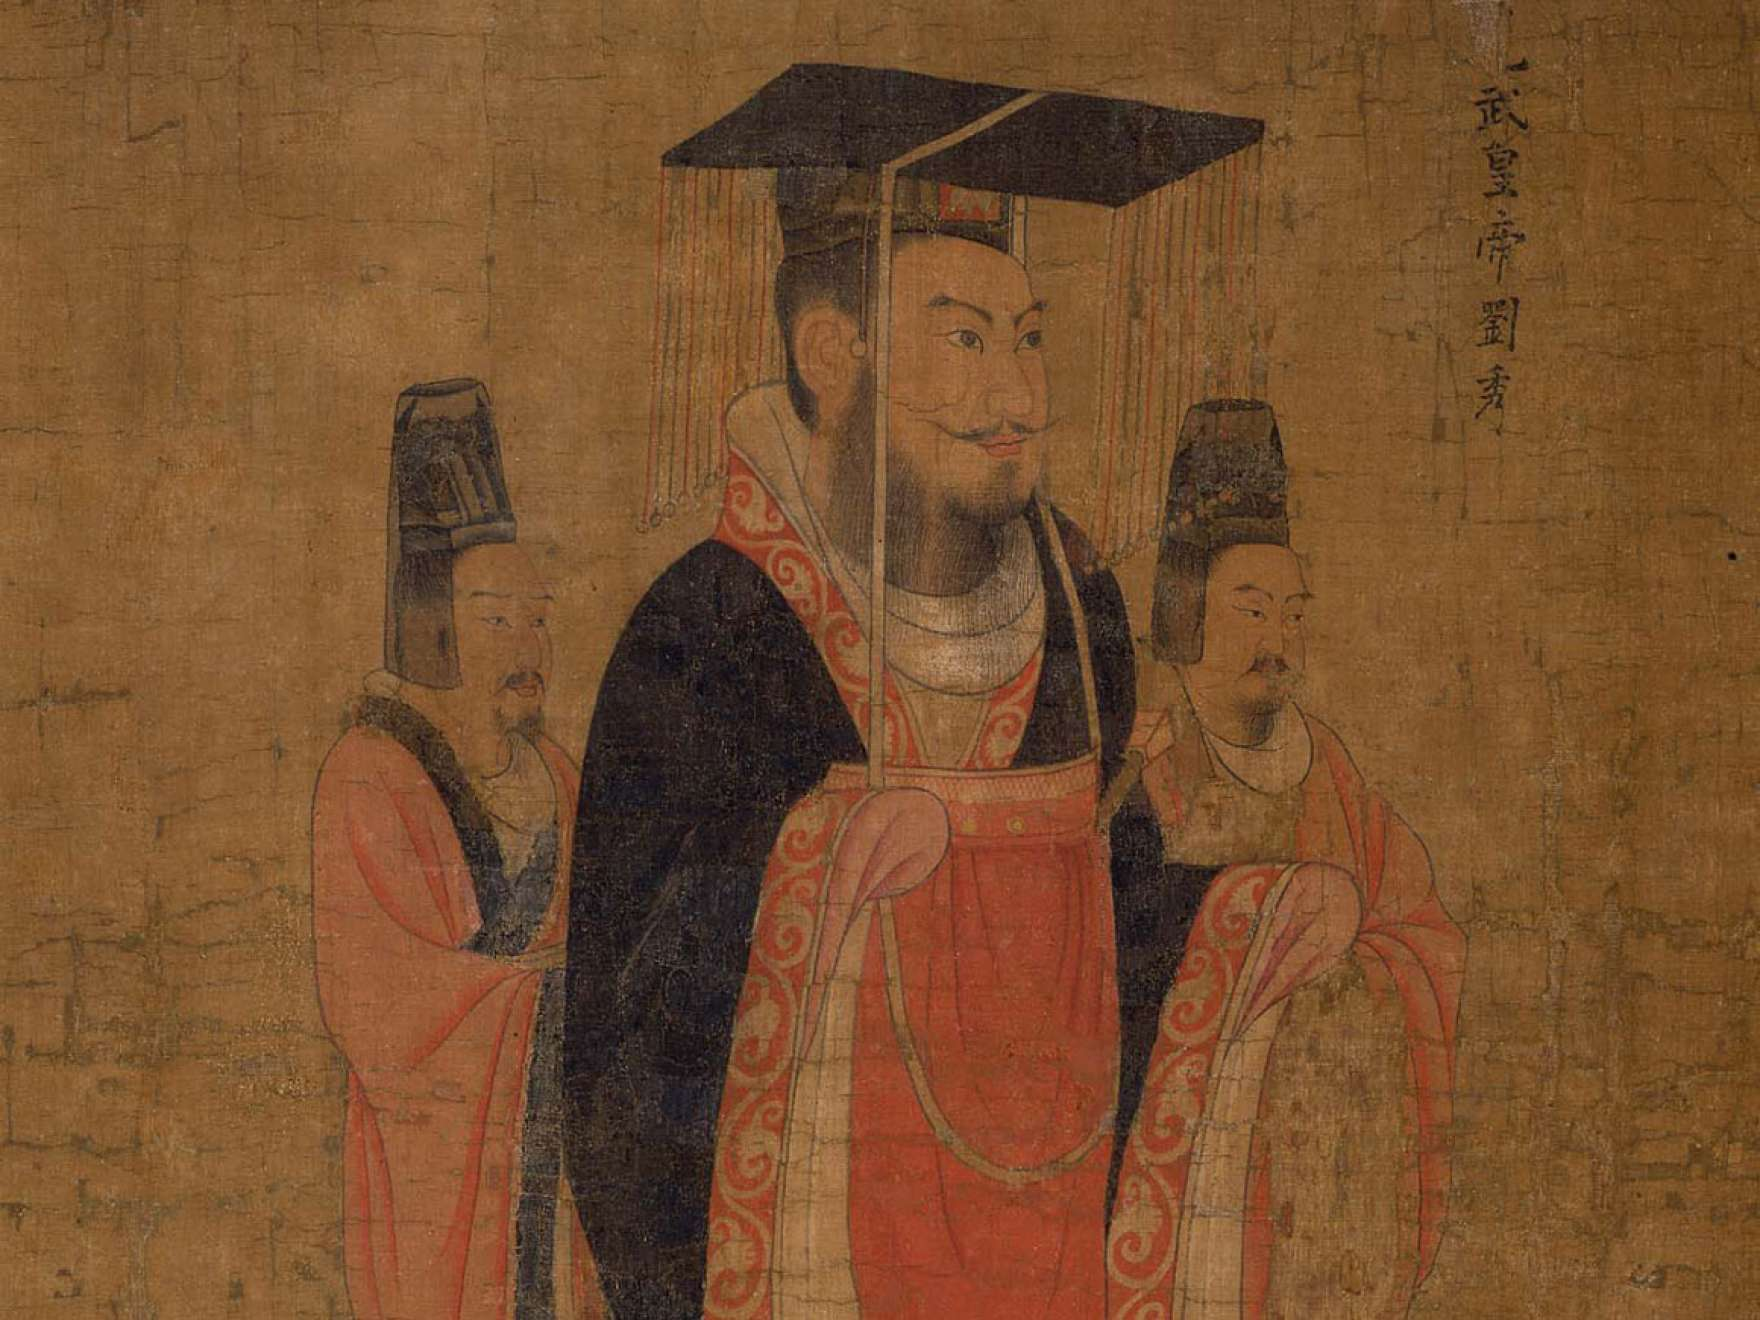 Detail of painting, The thirteen emperors, attributed to Yan Liben